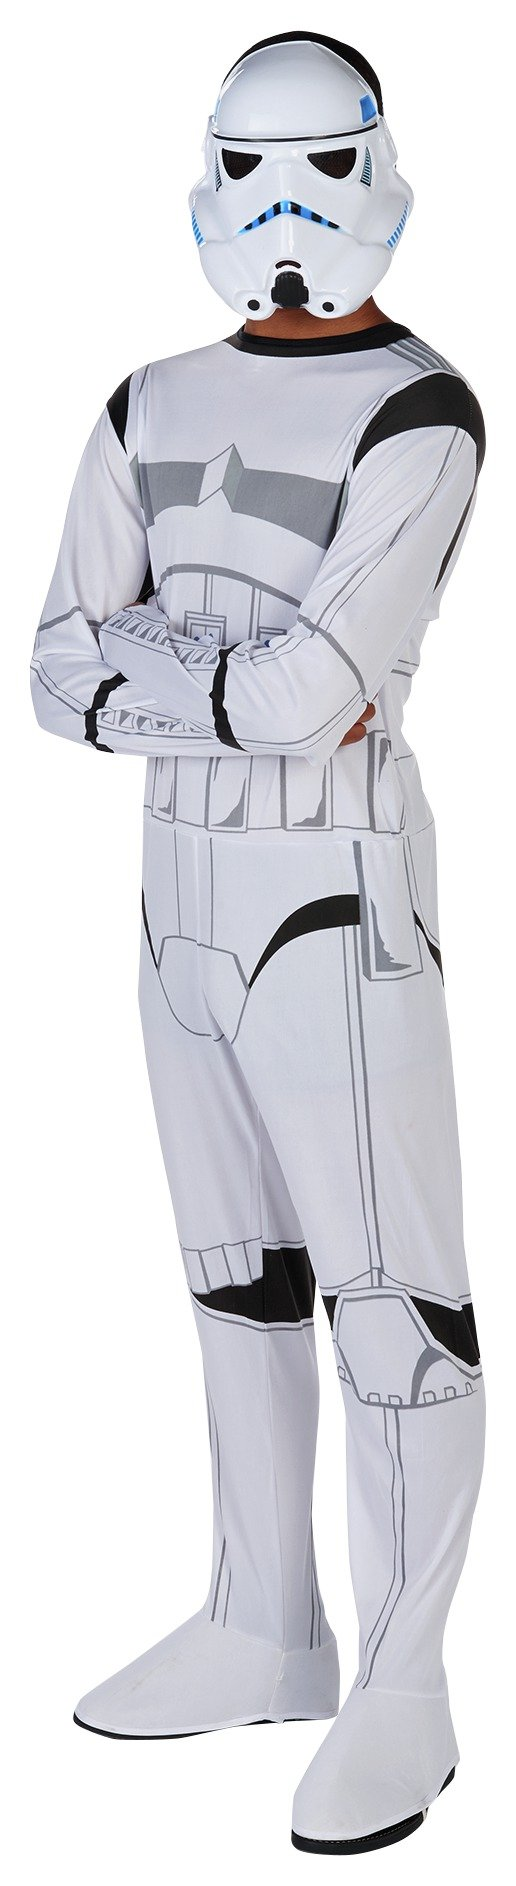 Star Wars Stormtrooper Fancy Dress - Large/Extra Large